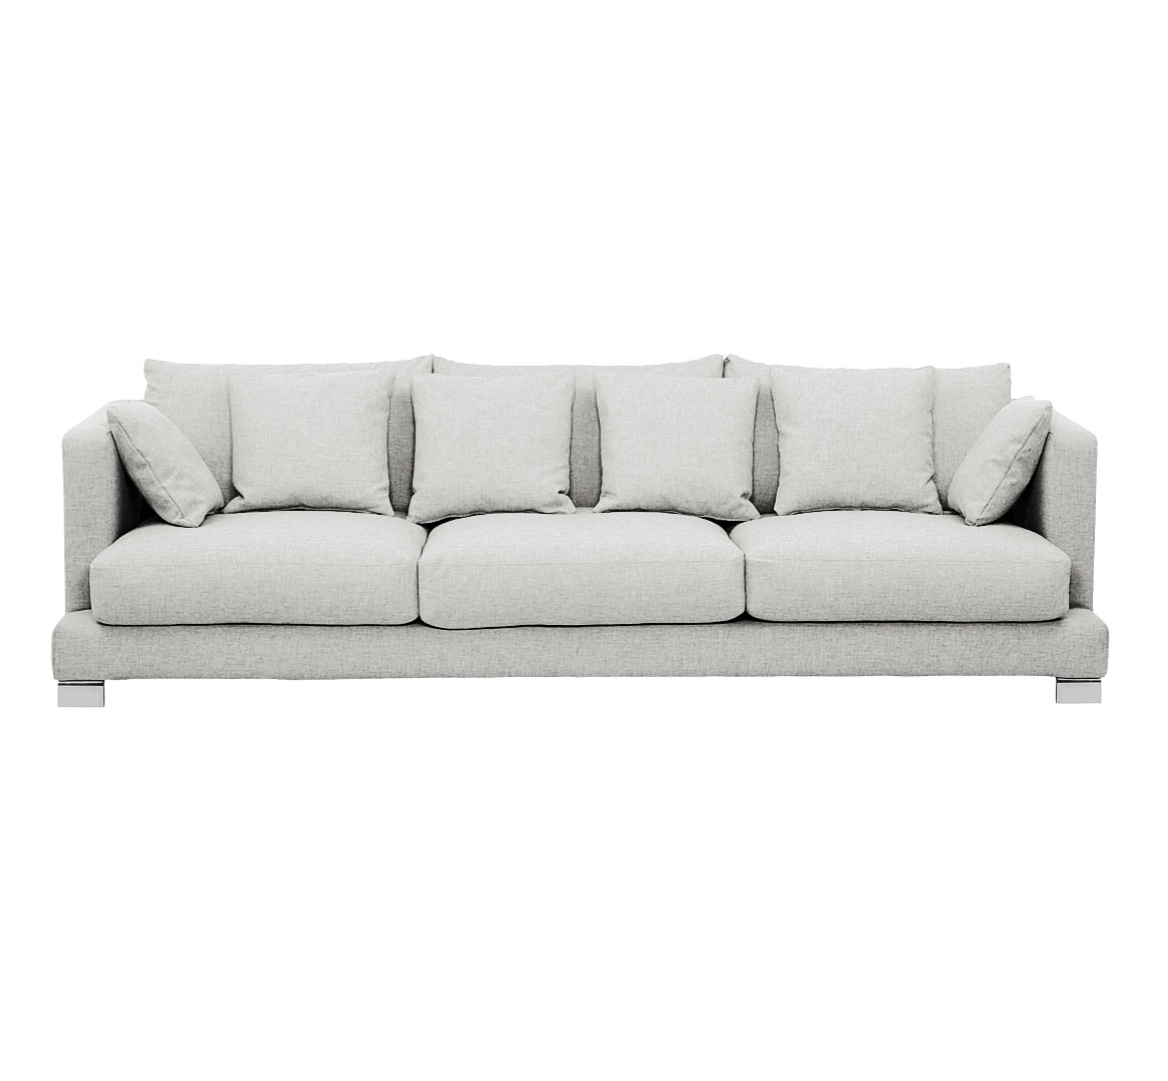 Ravello 3 Seater Sofa-0